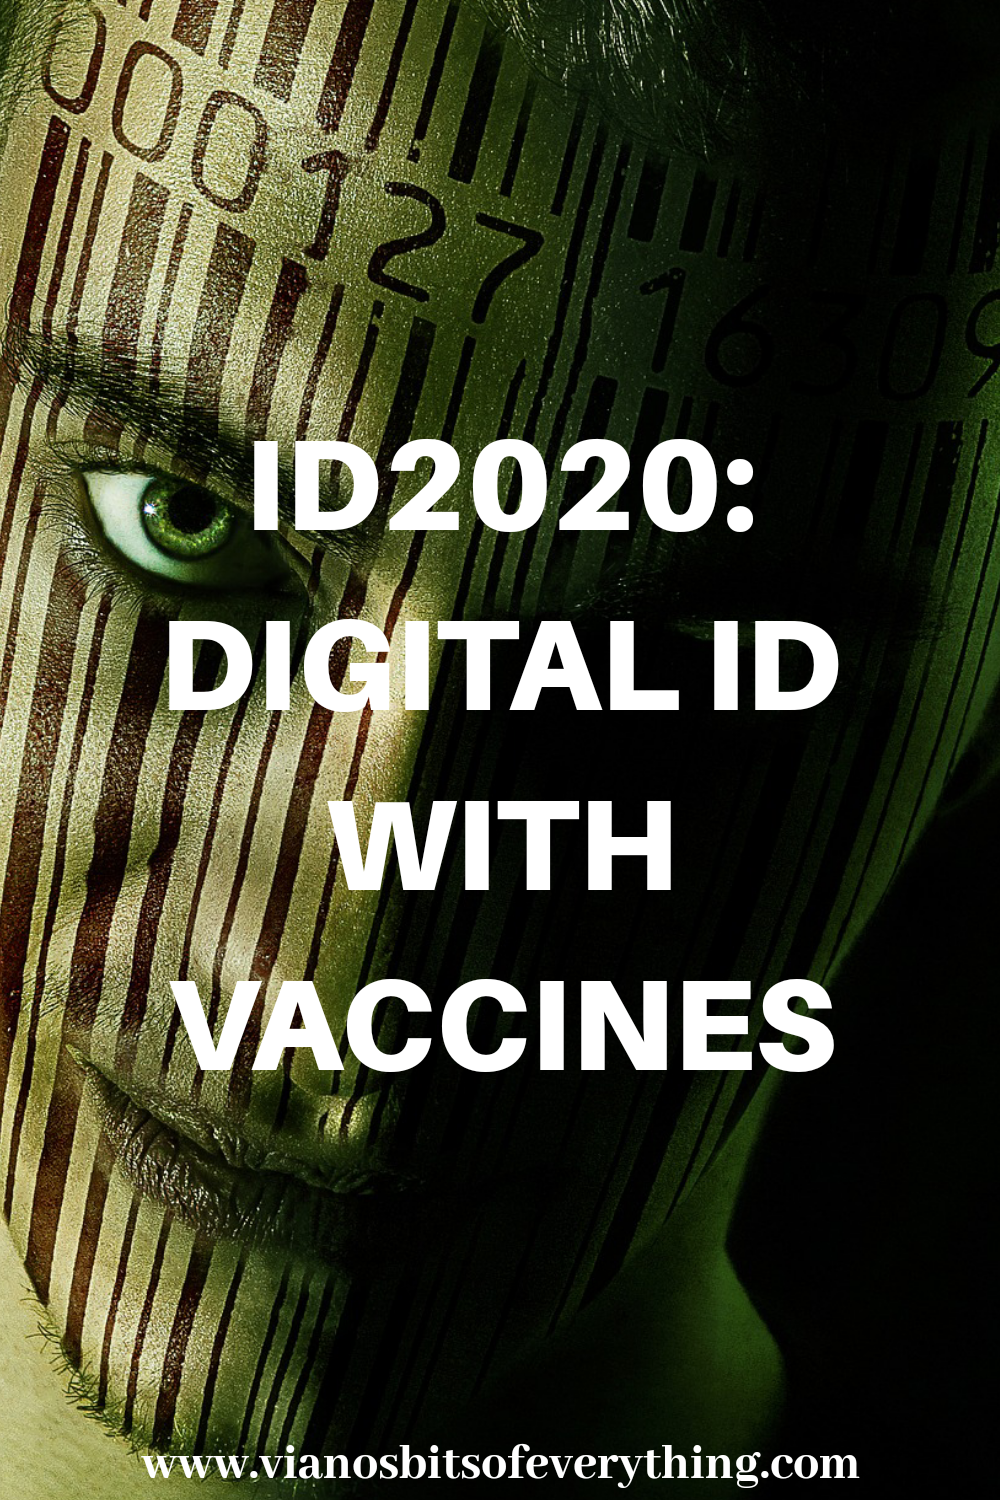 ID2020: Digital ID With Vaccines